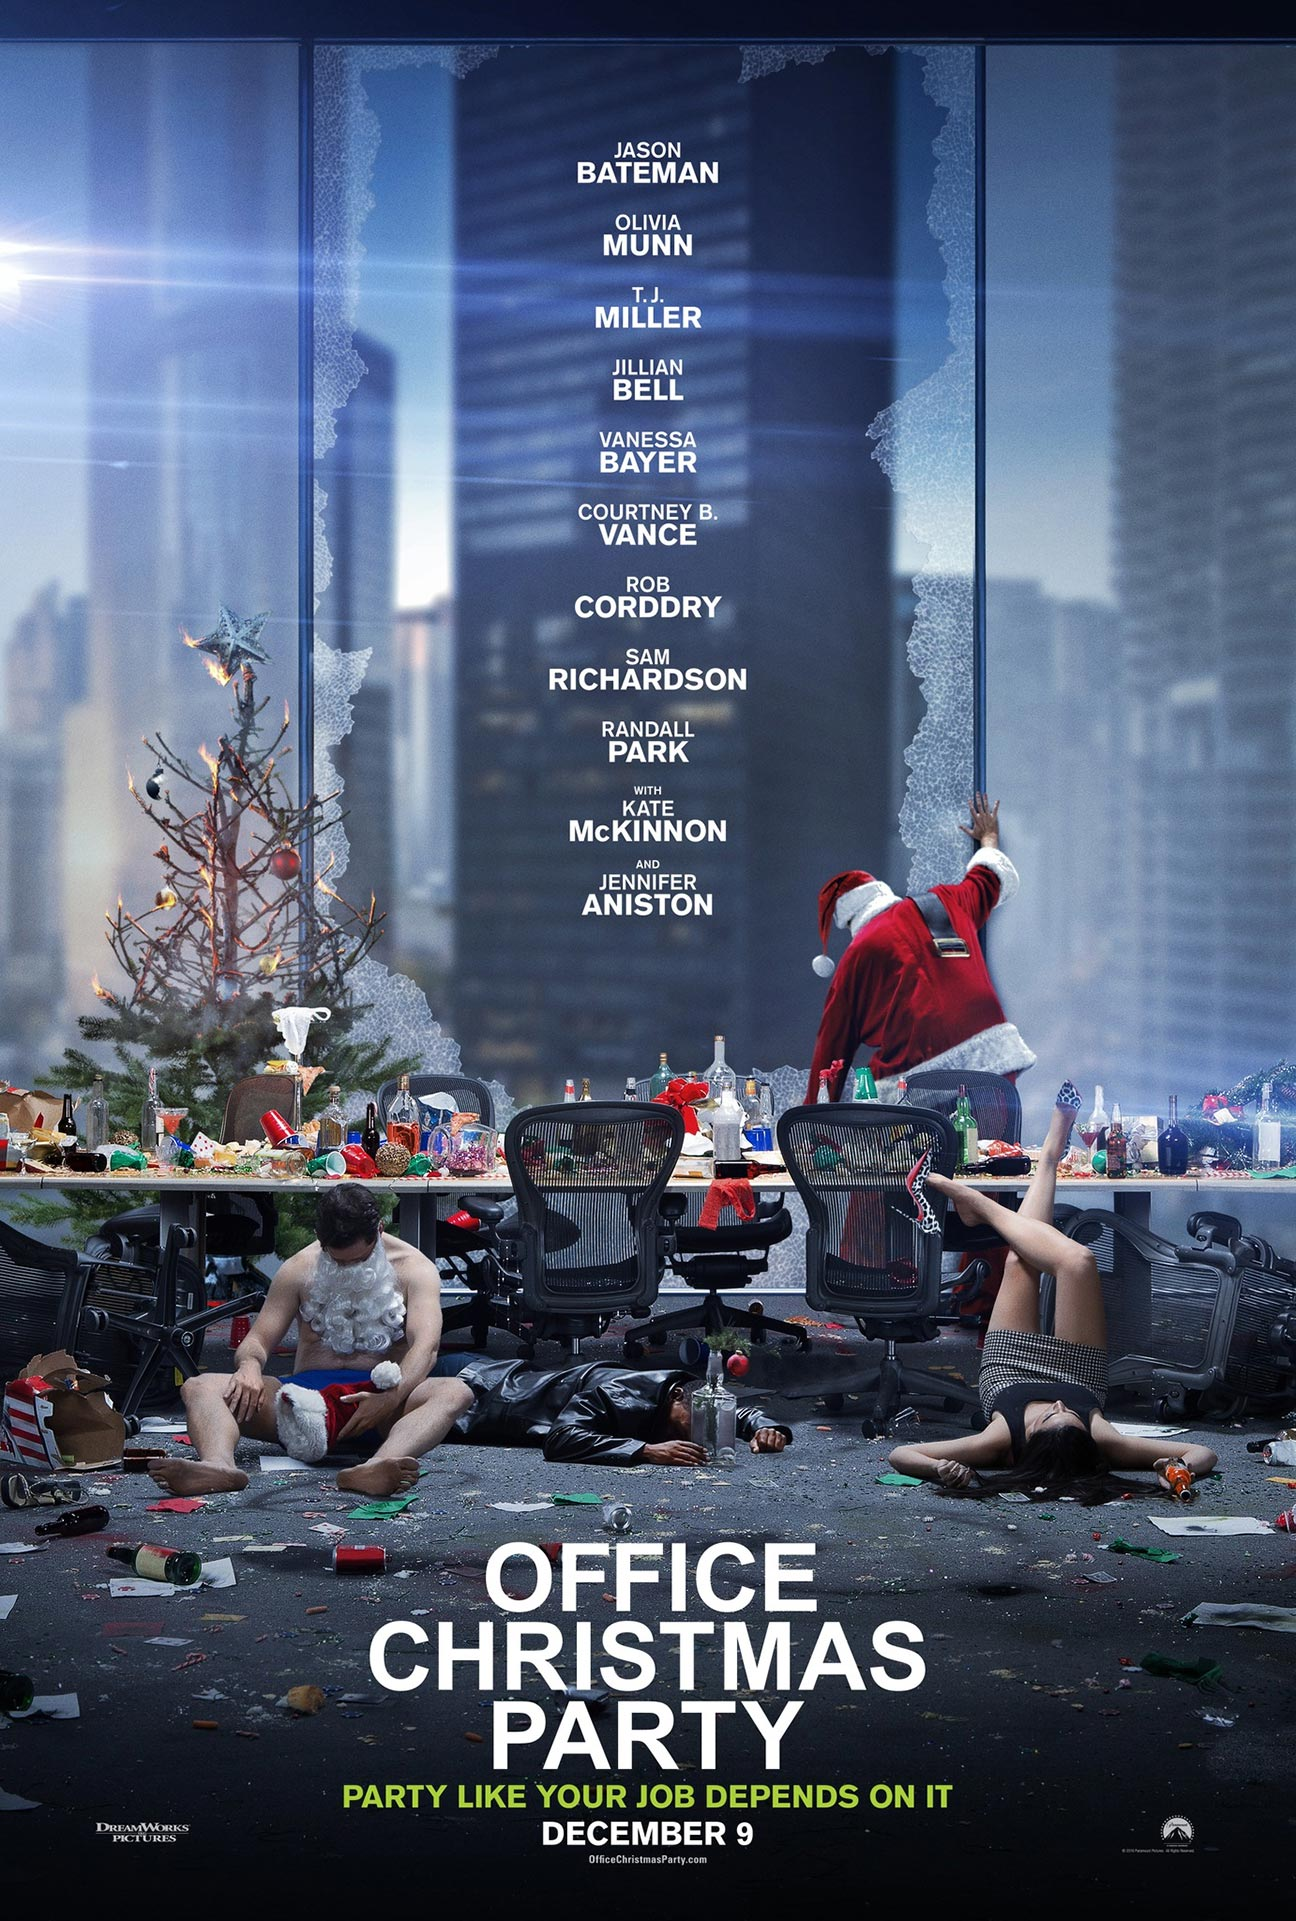 Download Office Christmas Party 2016 movie for free